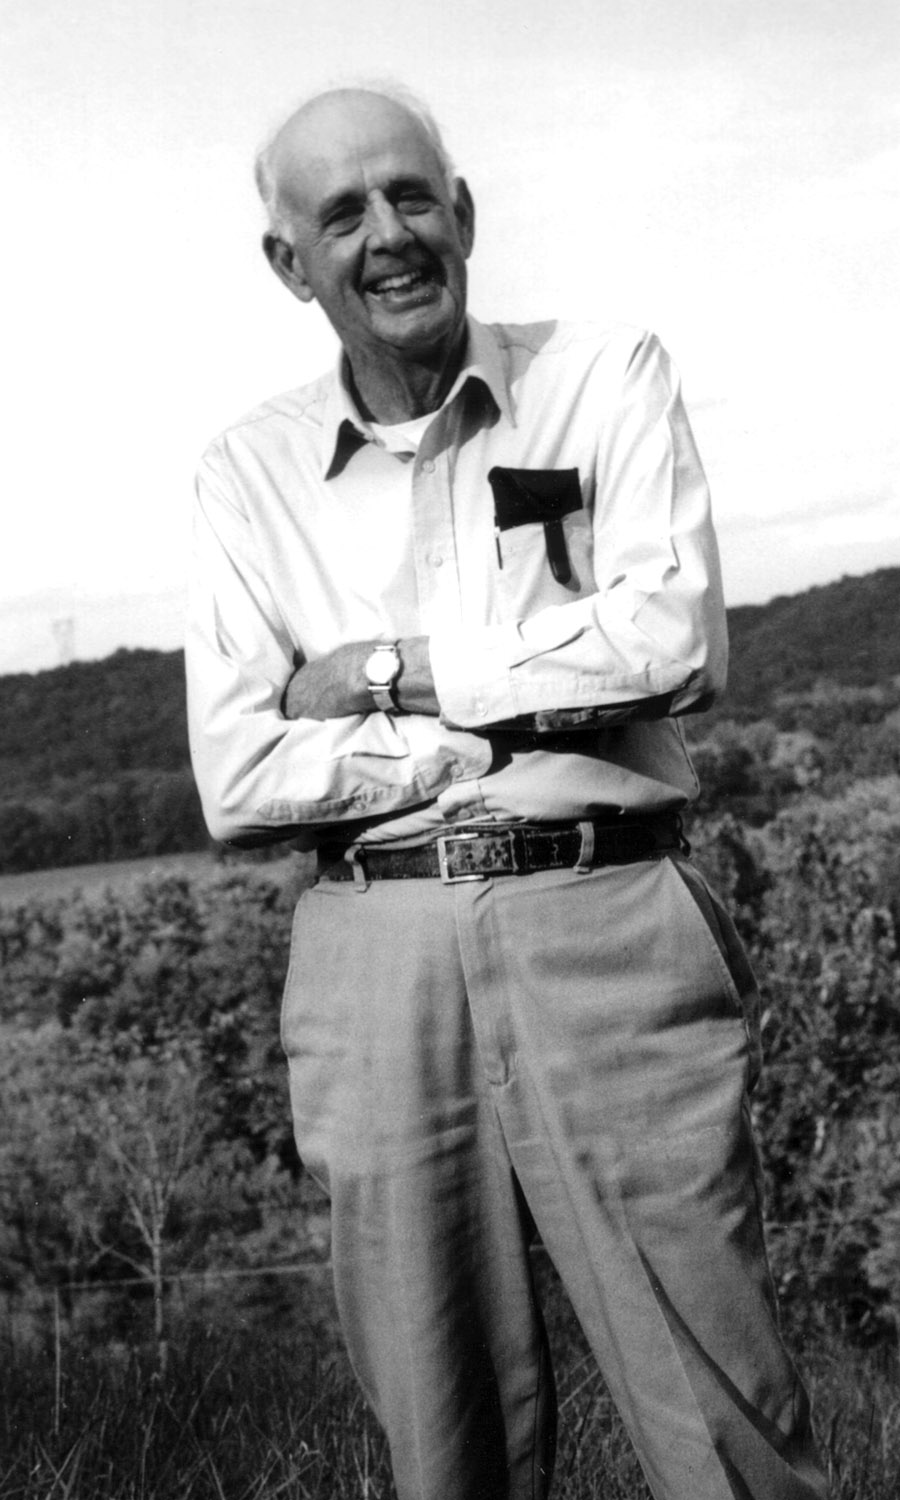 wendell berry carol polsgrove on writers lives wendell berry